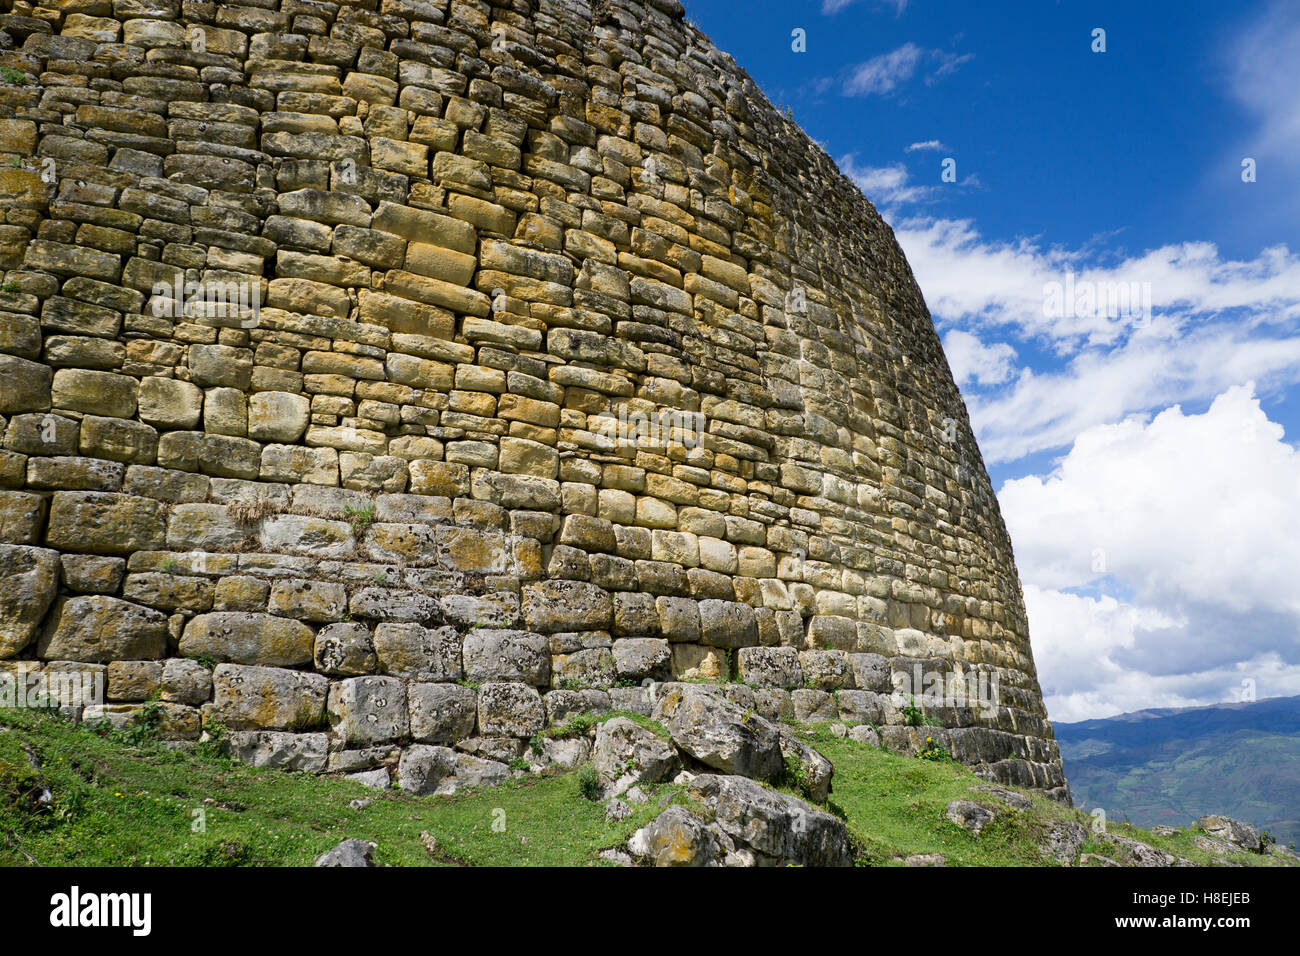 Kuelap, precolombian ruin of citadel city, Chachapoyas, Peru, South America - Stock Image